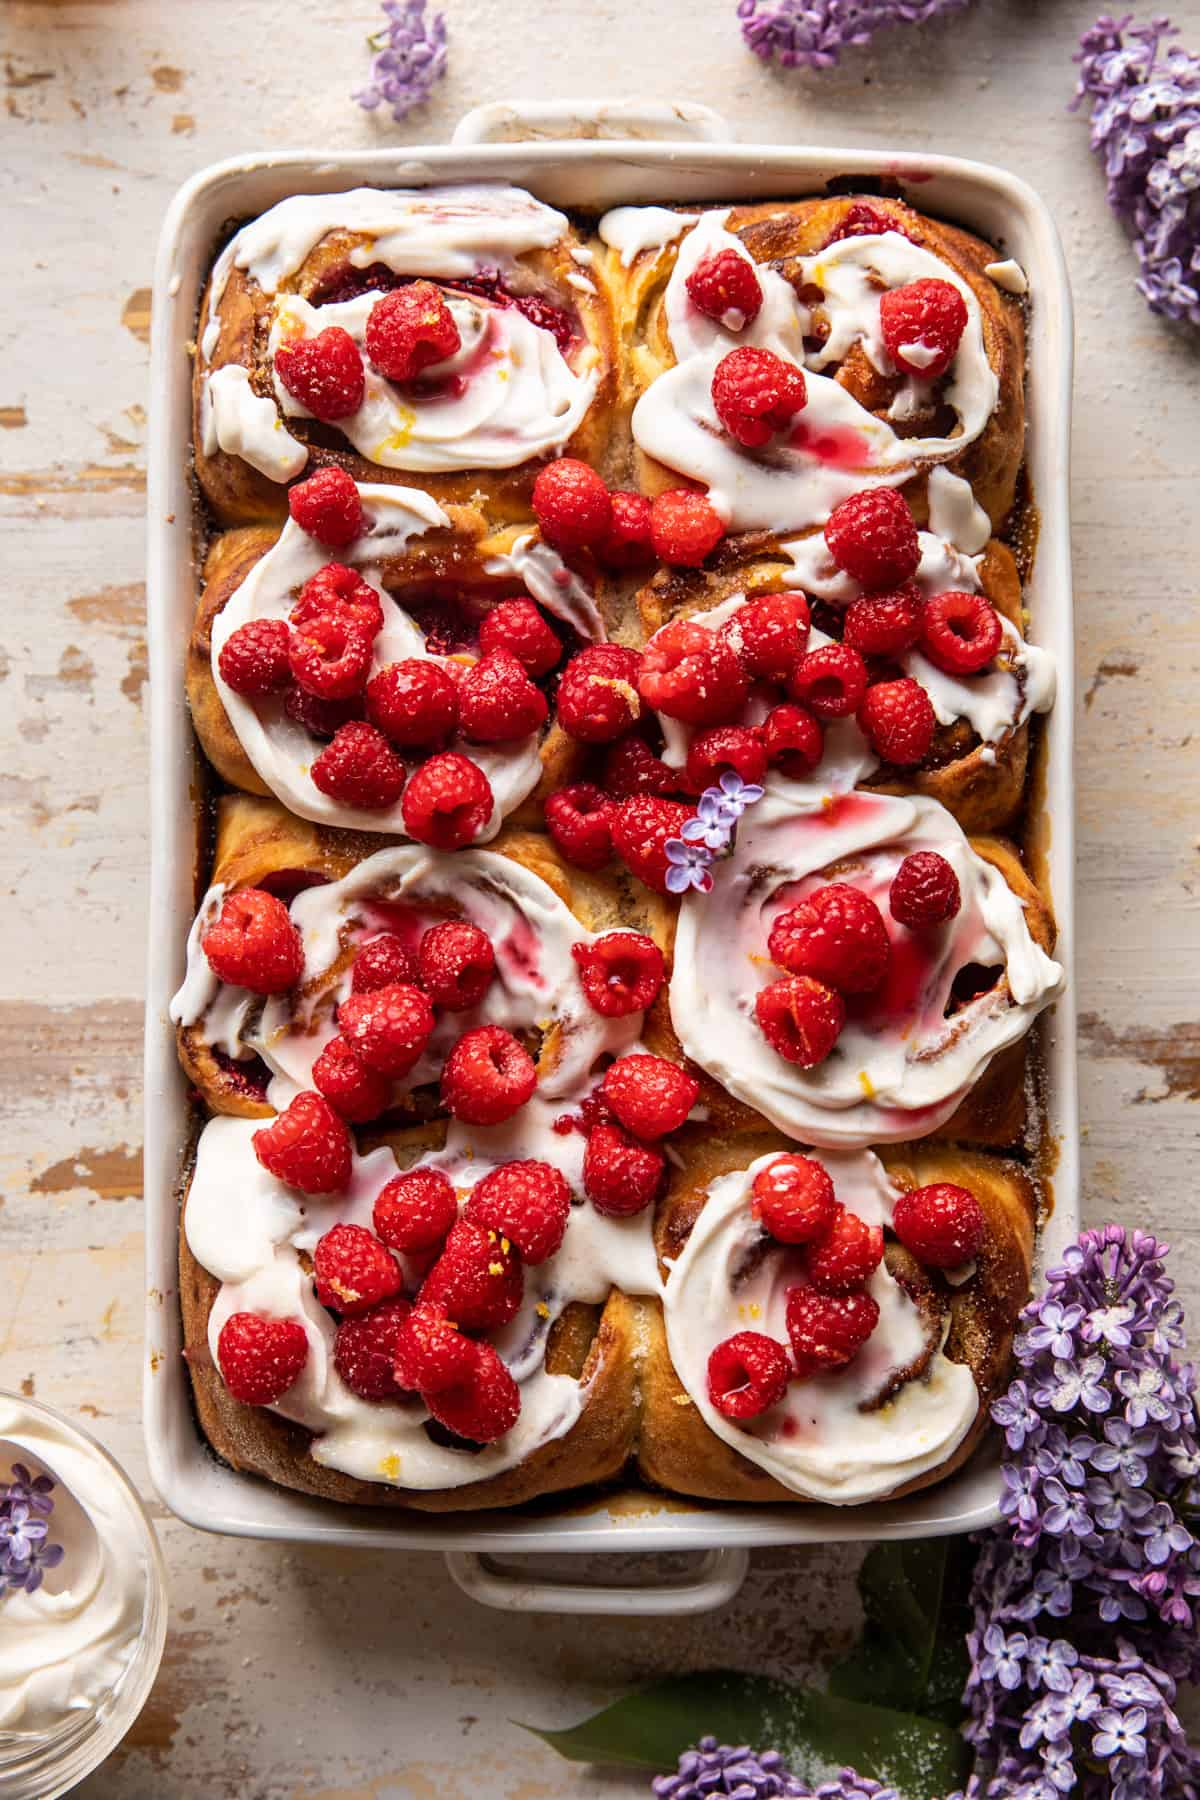 Raspberry Lemon Brioche Rolls with Whipped Ricotta Cream